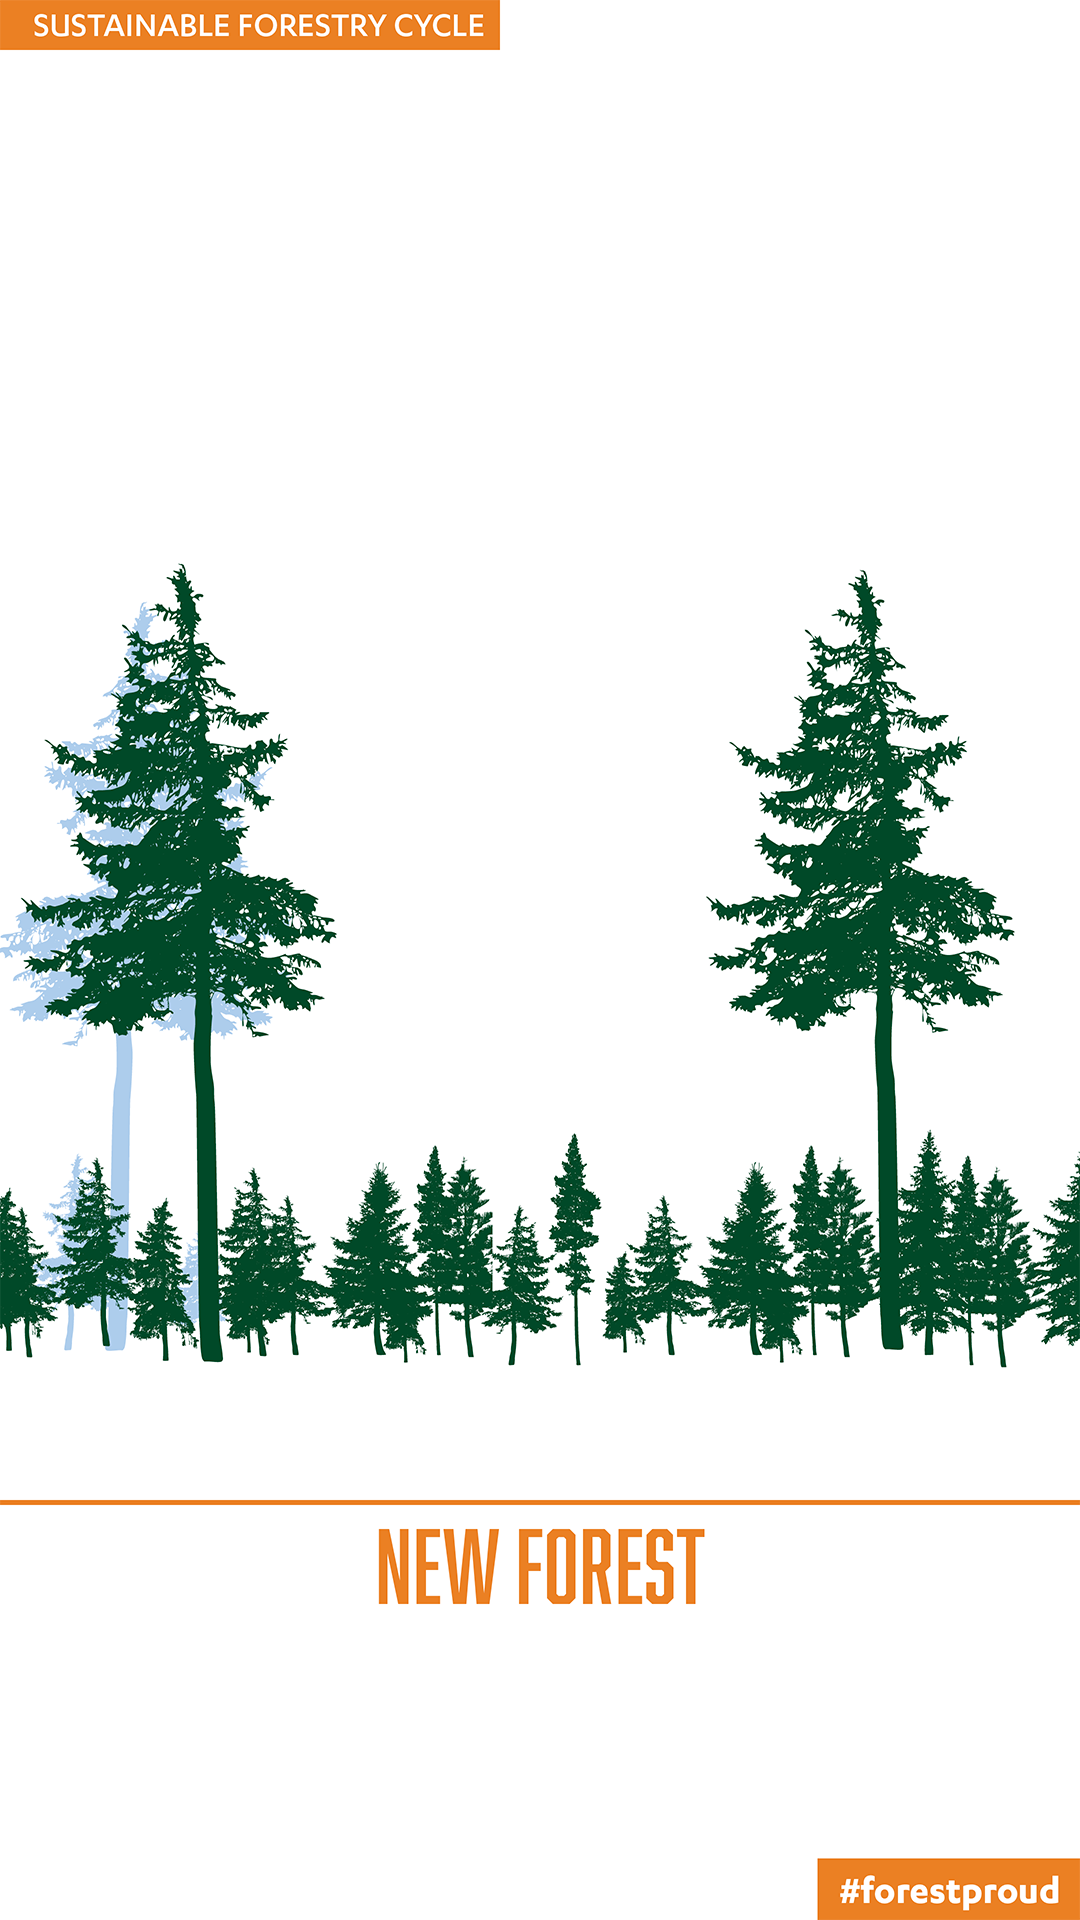 The Sustainable Forestry Cycle